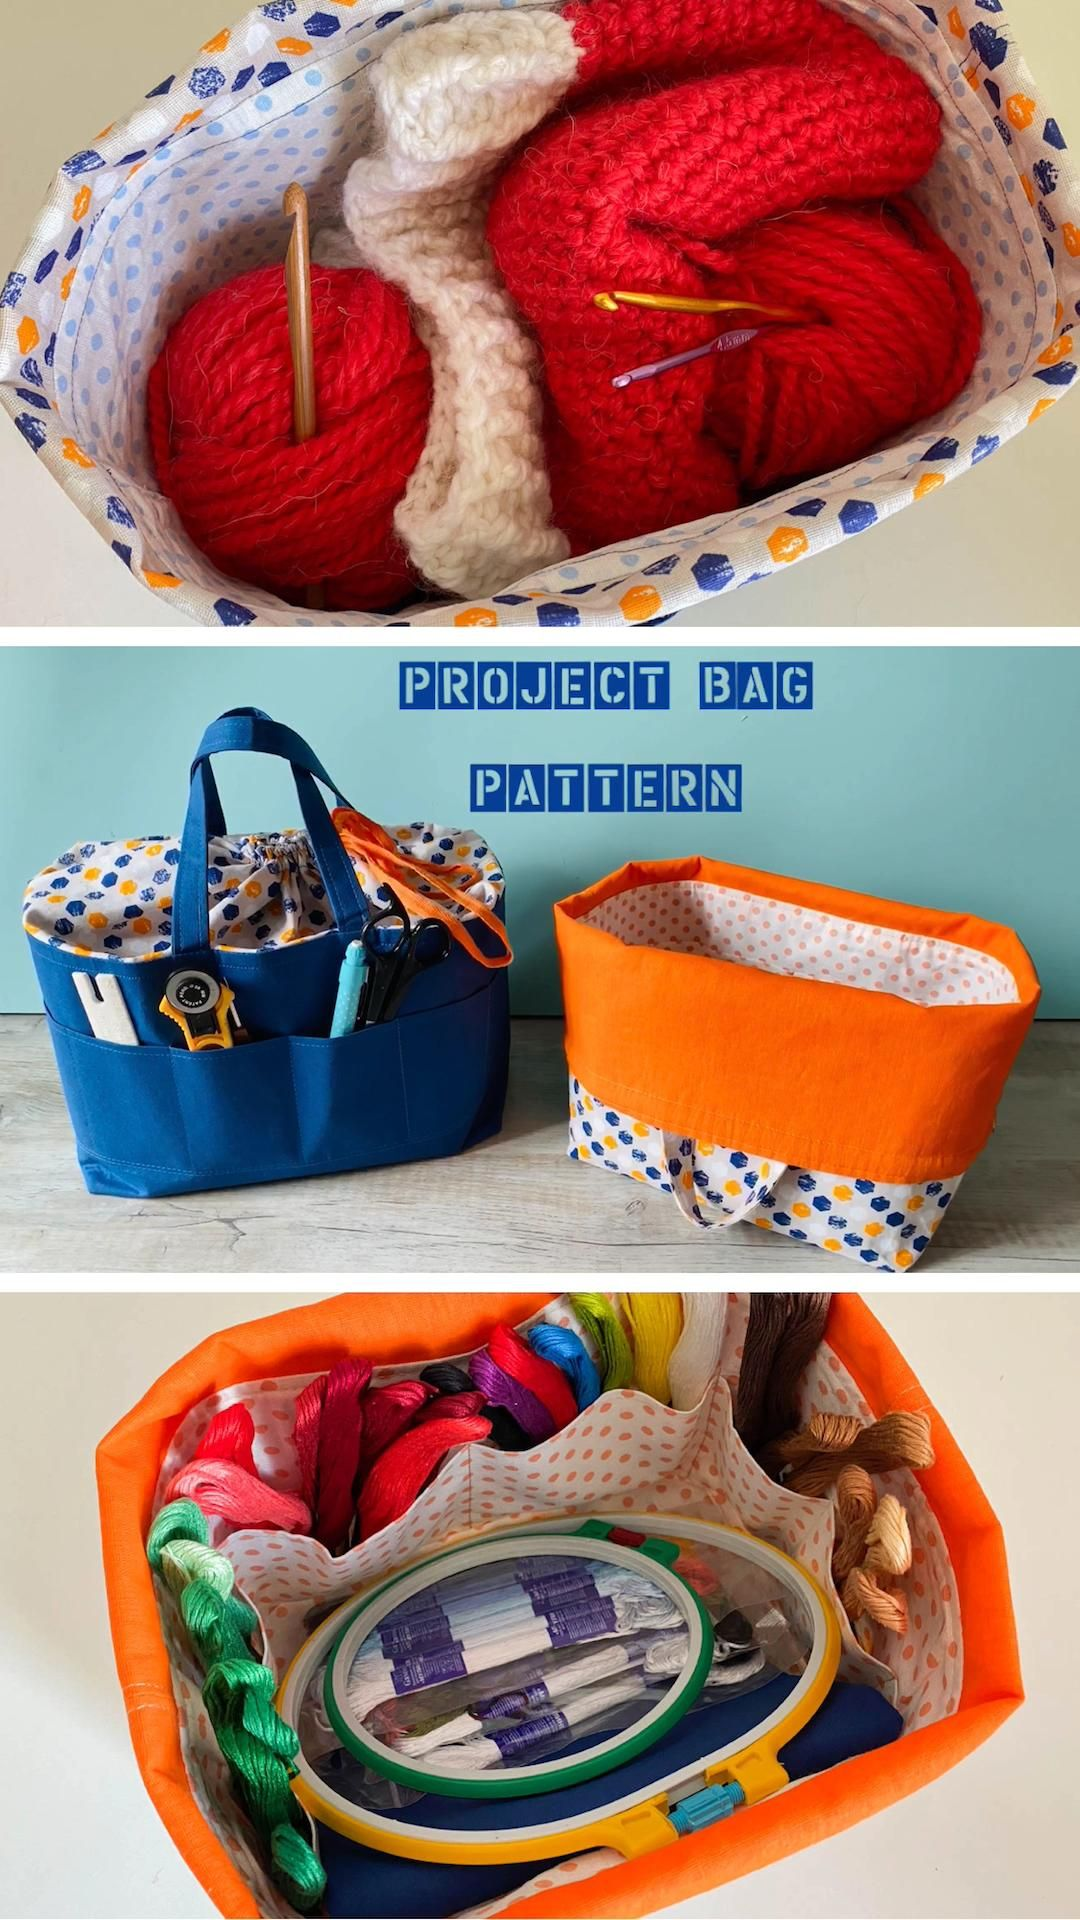 Knitting project bag PATTERN, Drawstring bag, Storage bag sewing tutorial, Easy for Beginners Diy